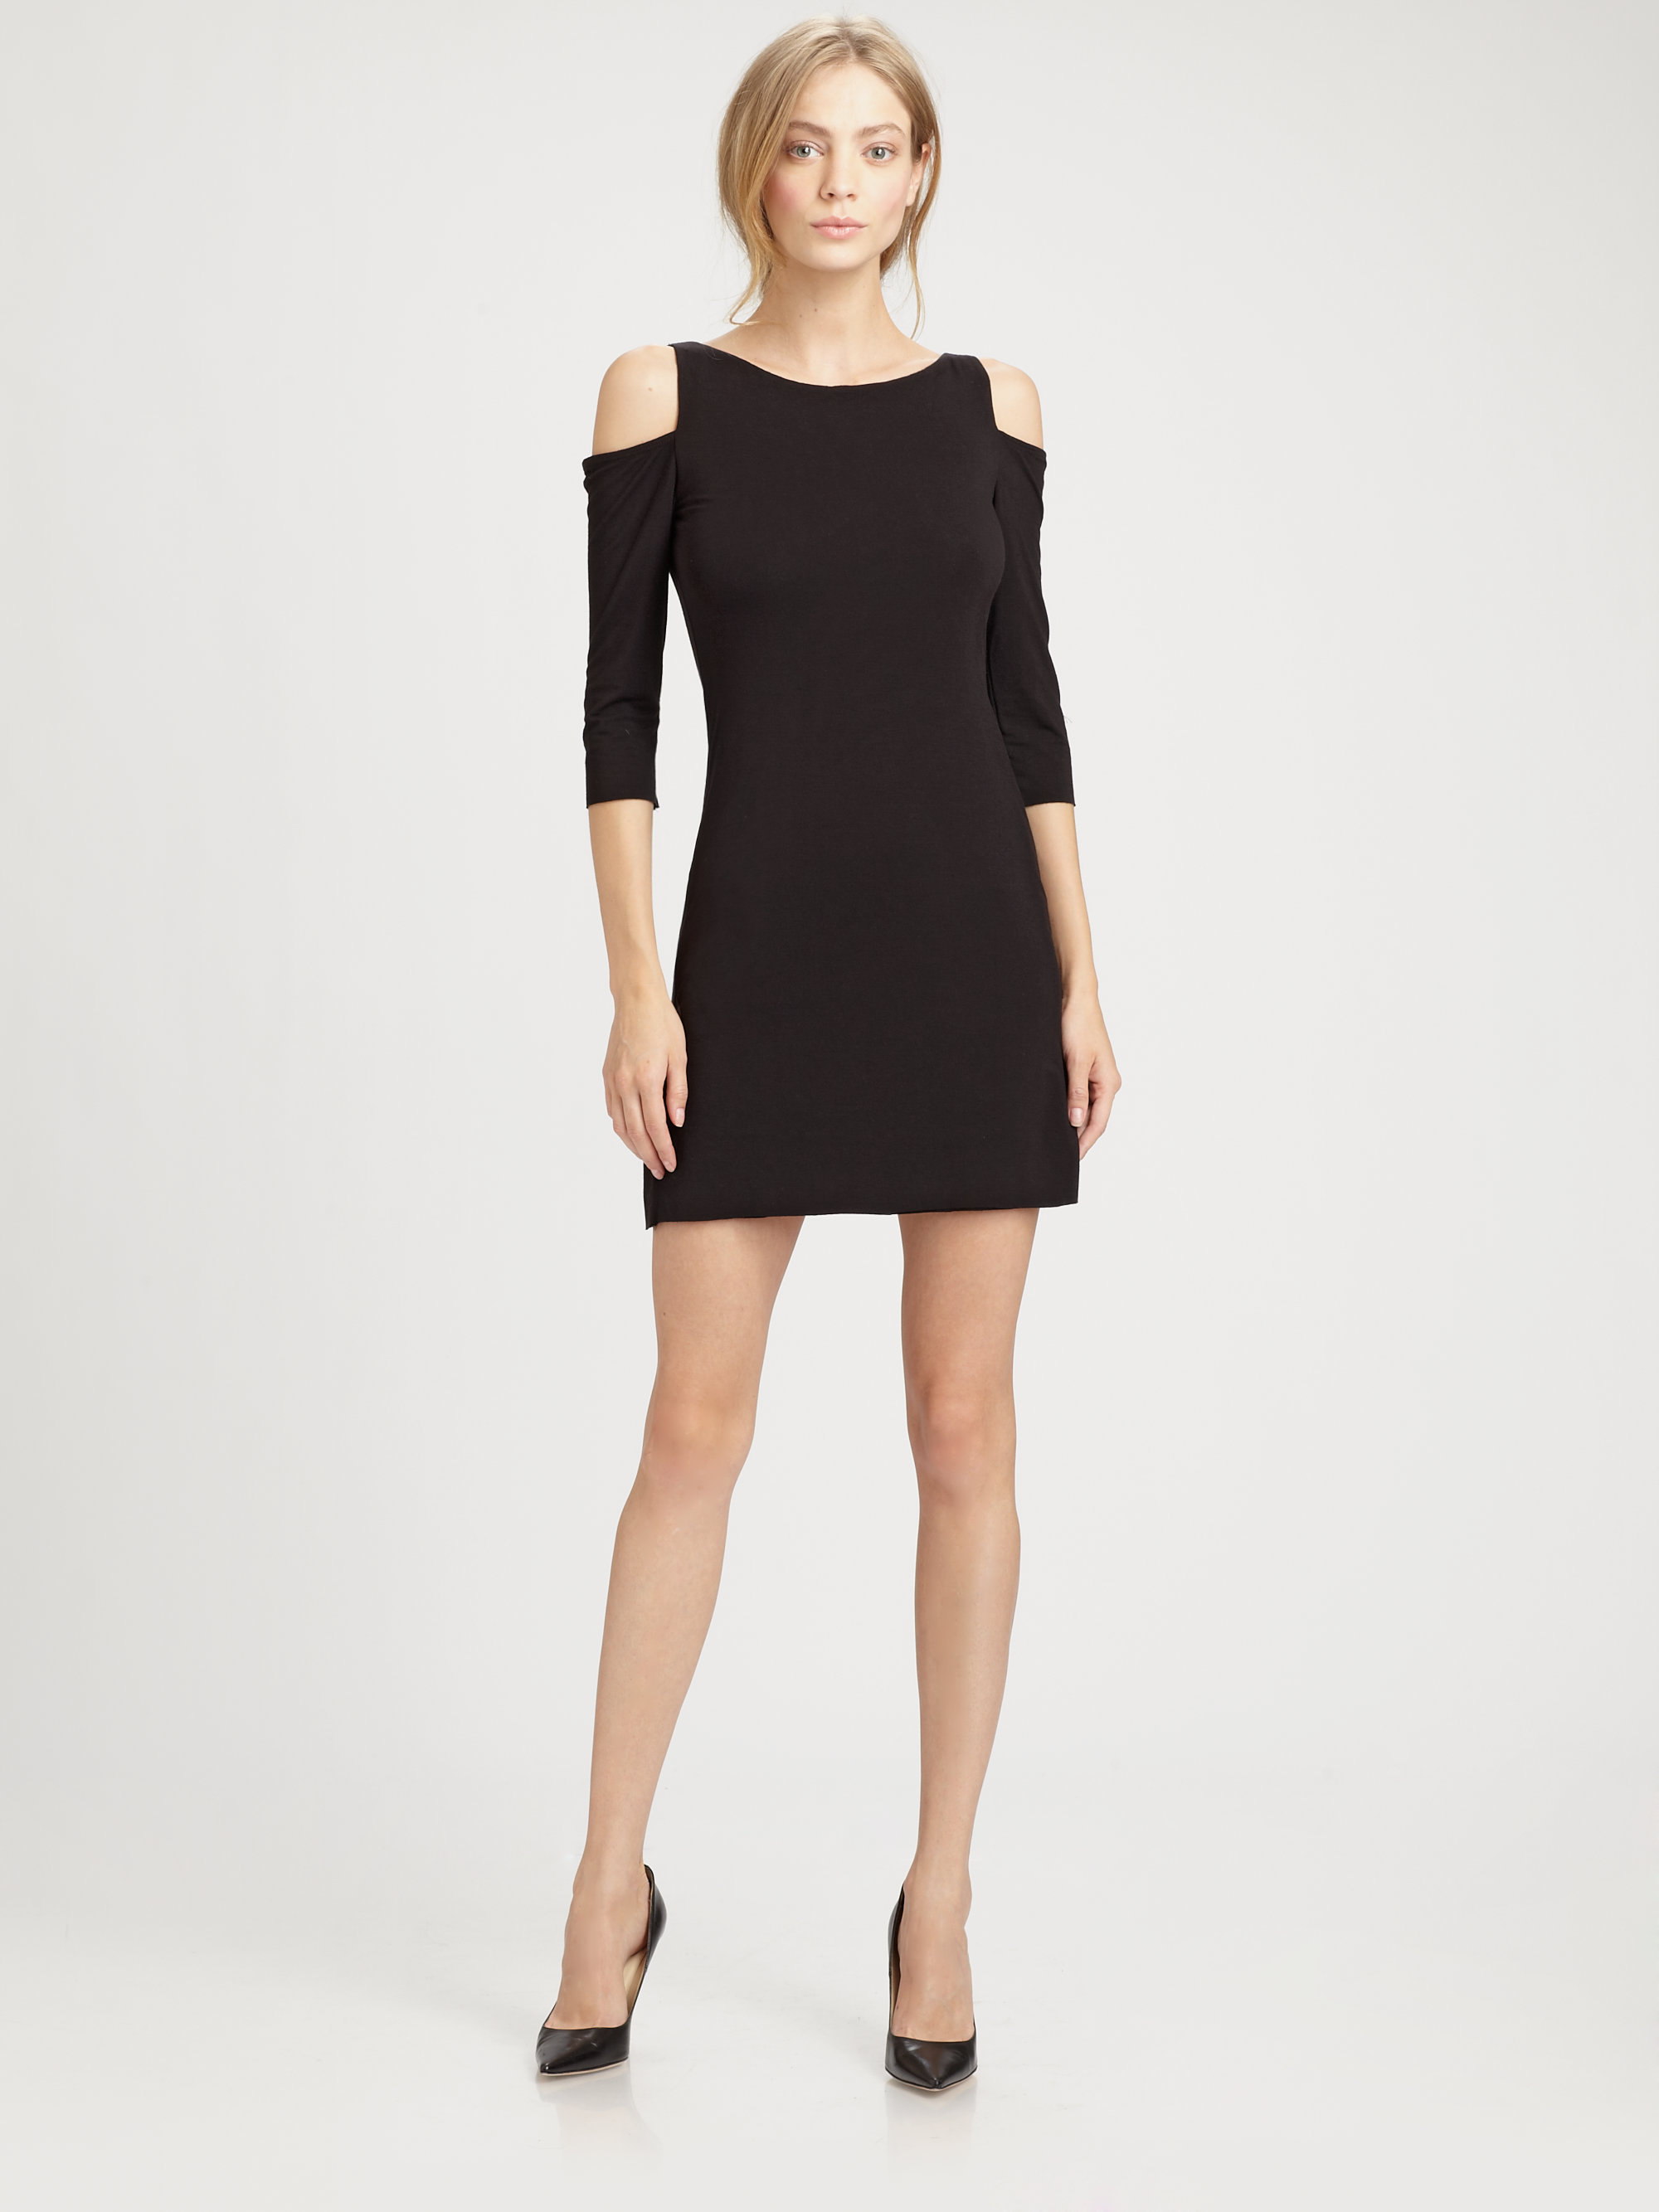 Bailey 44 black dress long sleeve